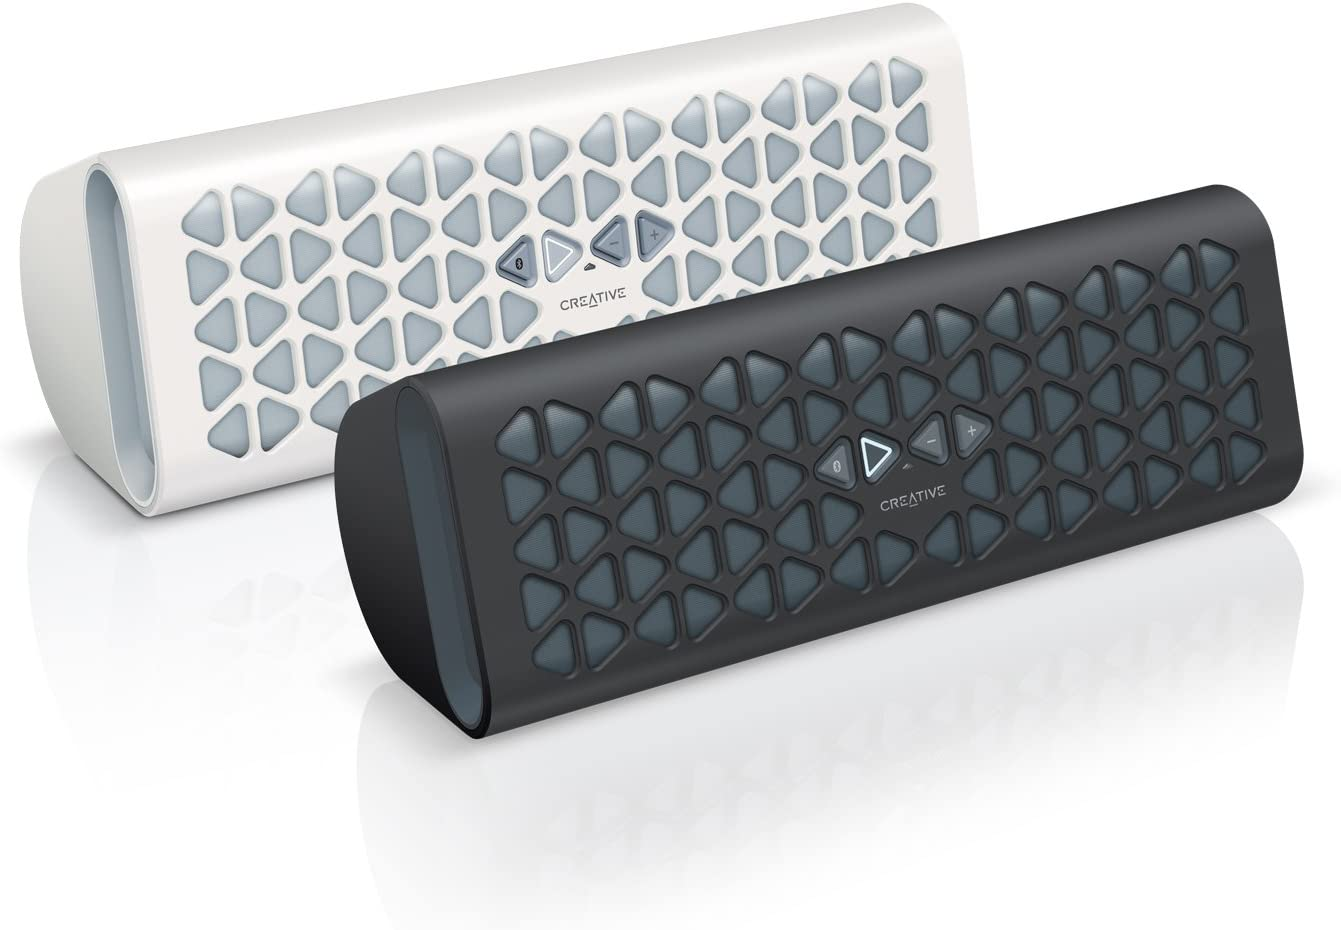 Creative Muvo 20 Portable Wireless Bluetooth Speaker with NFC Black Amp and Dual Flared Bass Port